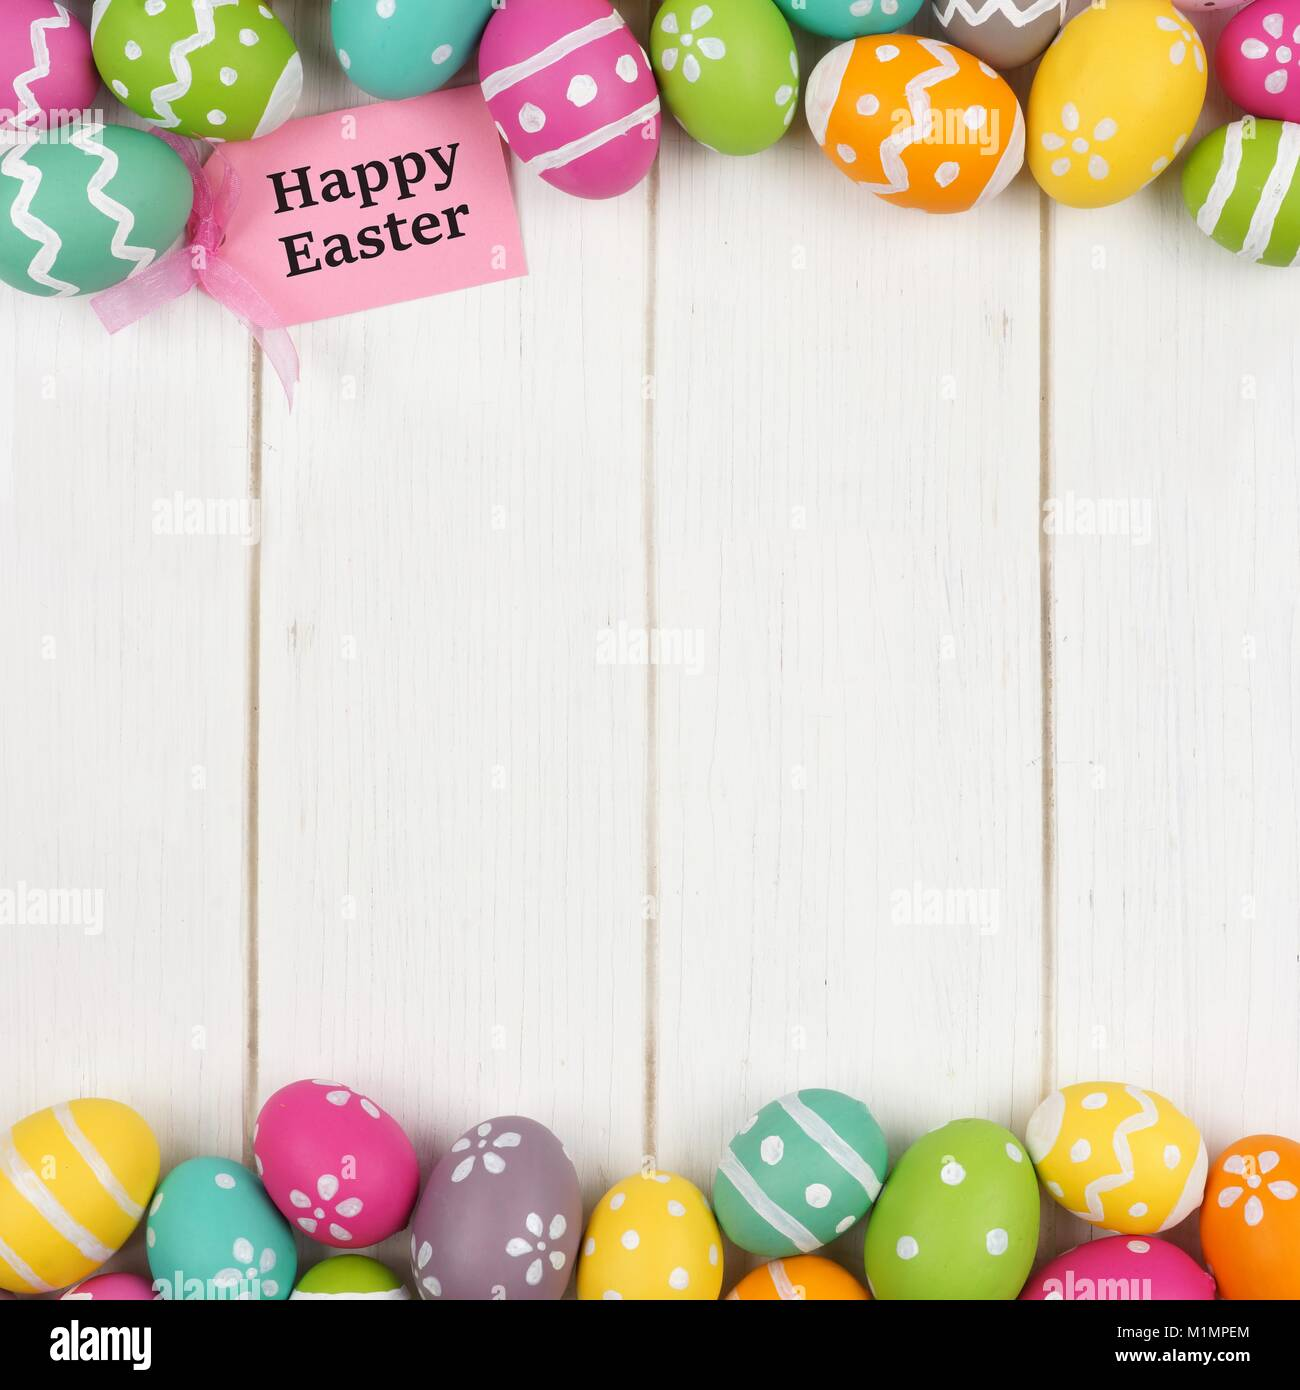 Happy easter gift tag with colorful easter egg double border against happy easter gift tag with colorful easter egg double border against a white wood background negle Image collections